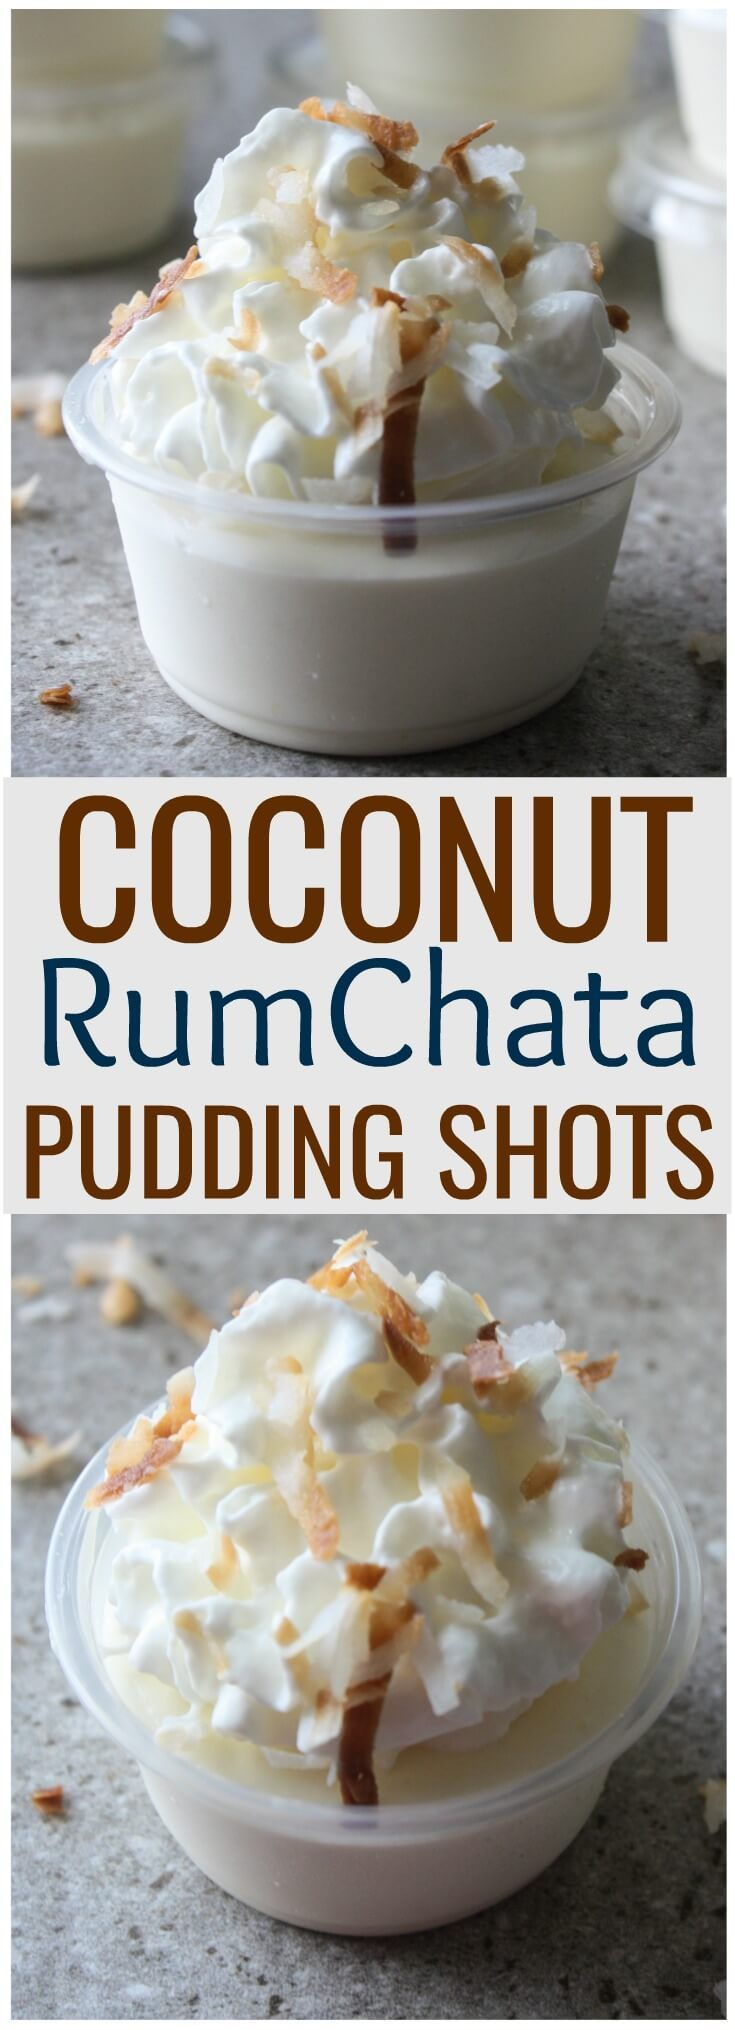 Best 25+ Rumchata pudding shots ideas on Pinterest | Rumchata ...